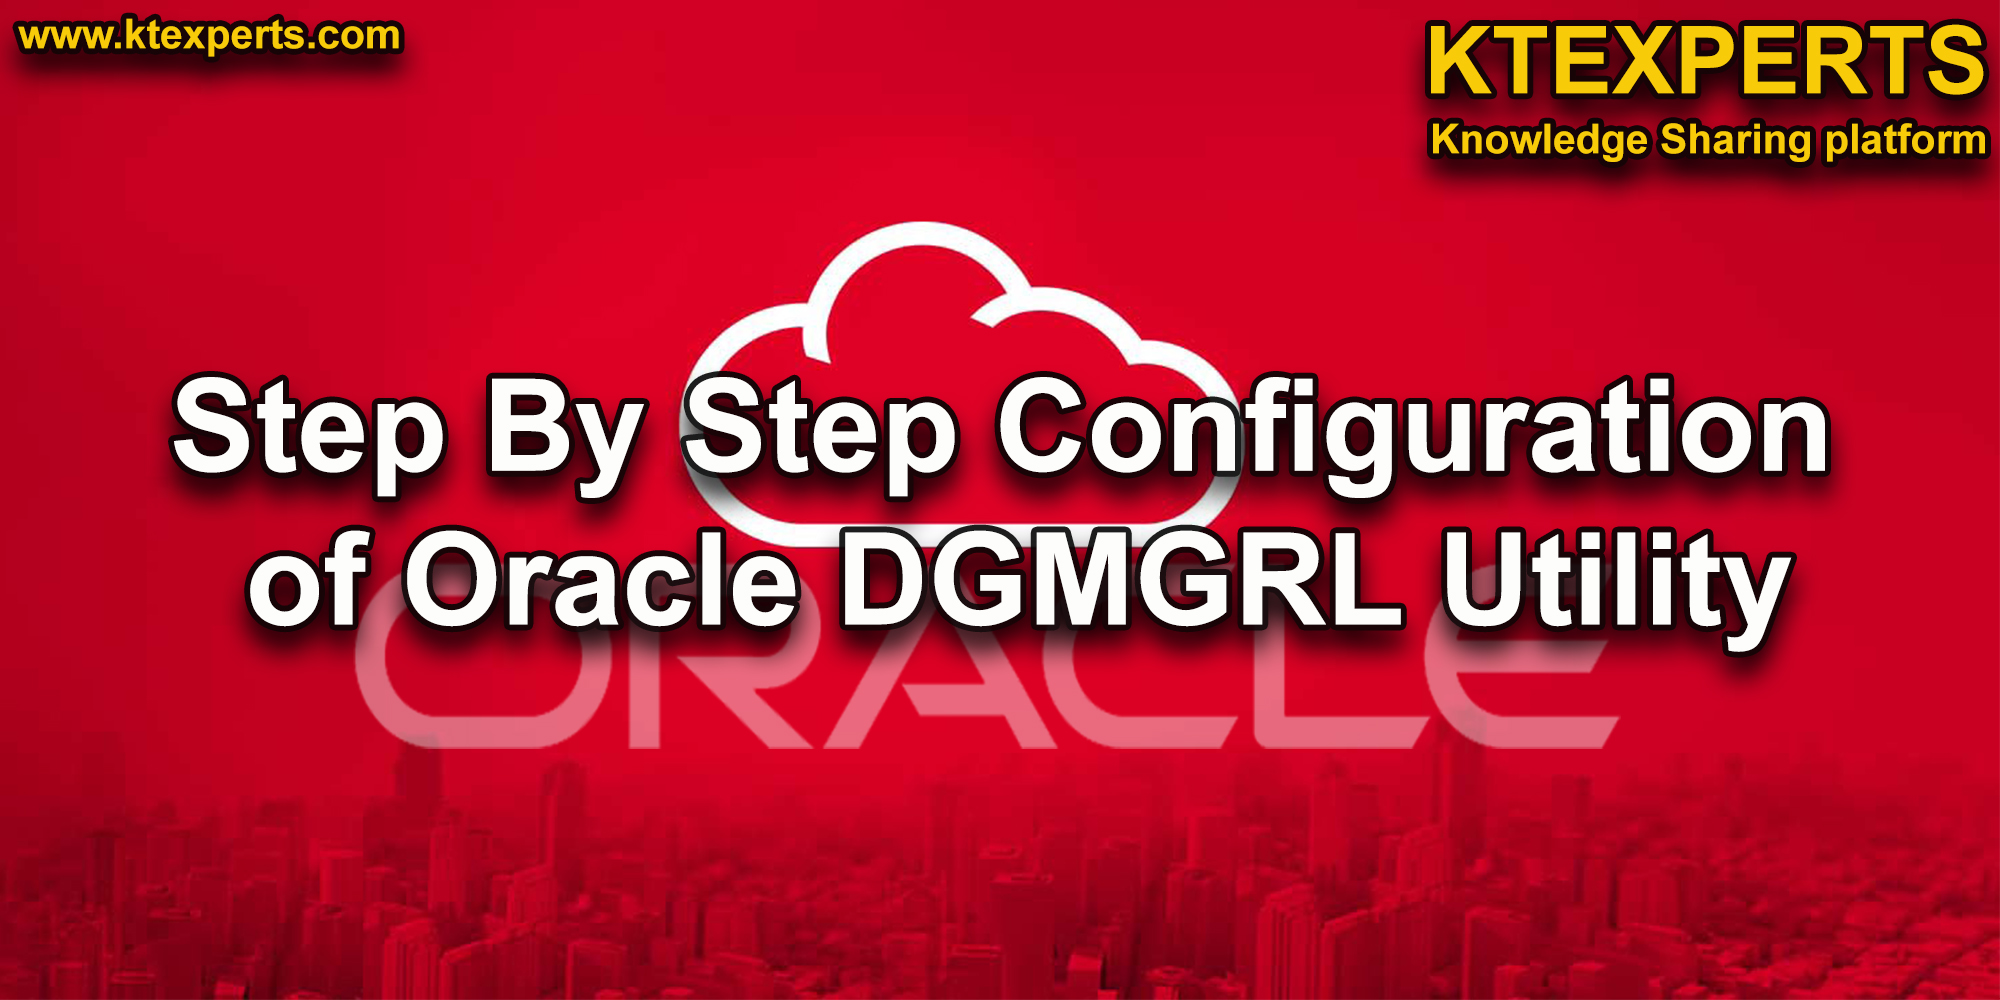 Step By Step Configuration of Oracle DGMGRL Utility